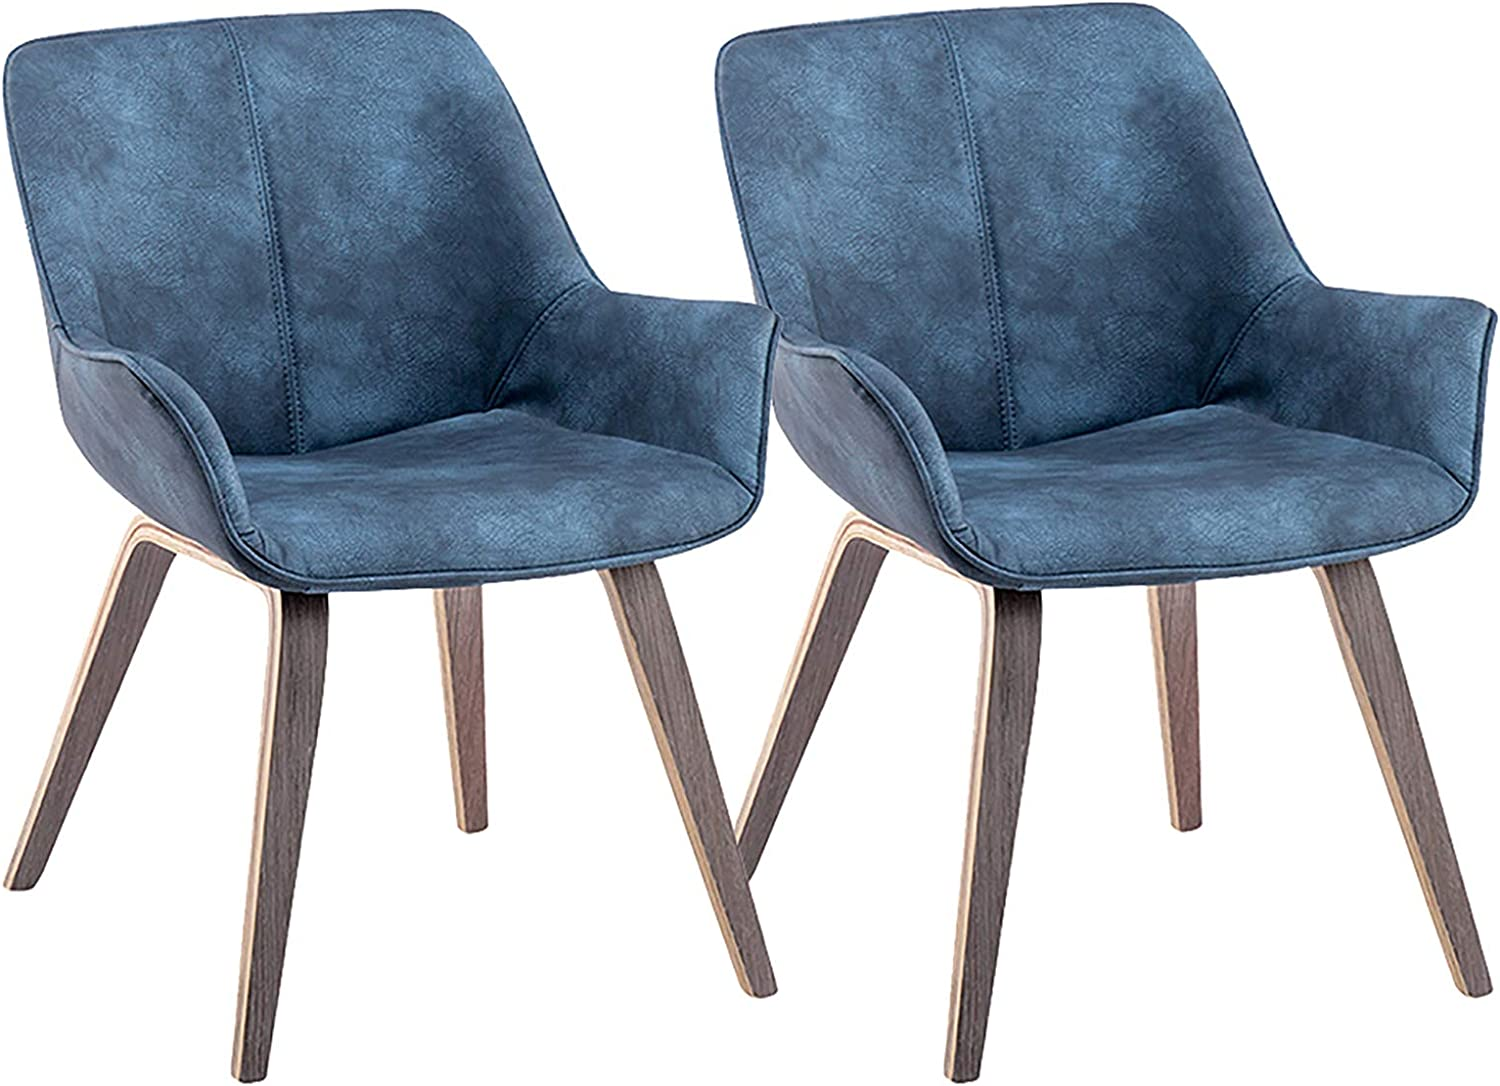 Amazon Com Yeefy Modern Living Room Chairs With Arms Blue Accent Chairs Set Of 2 Blue Chairs